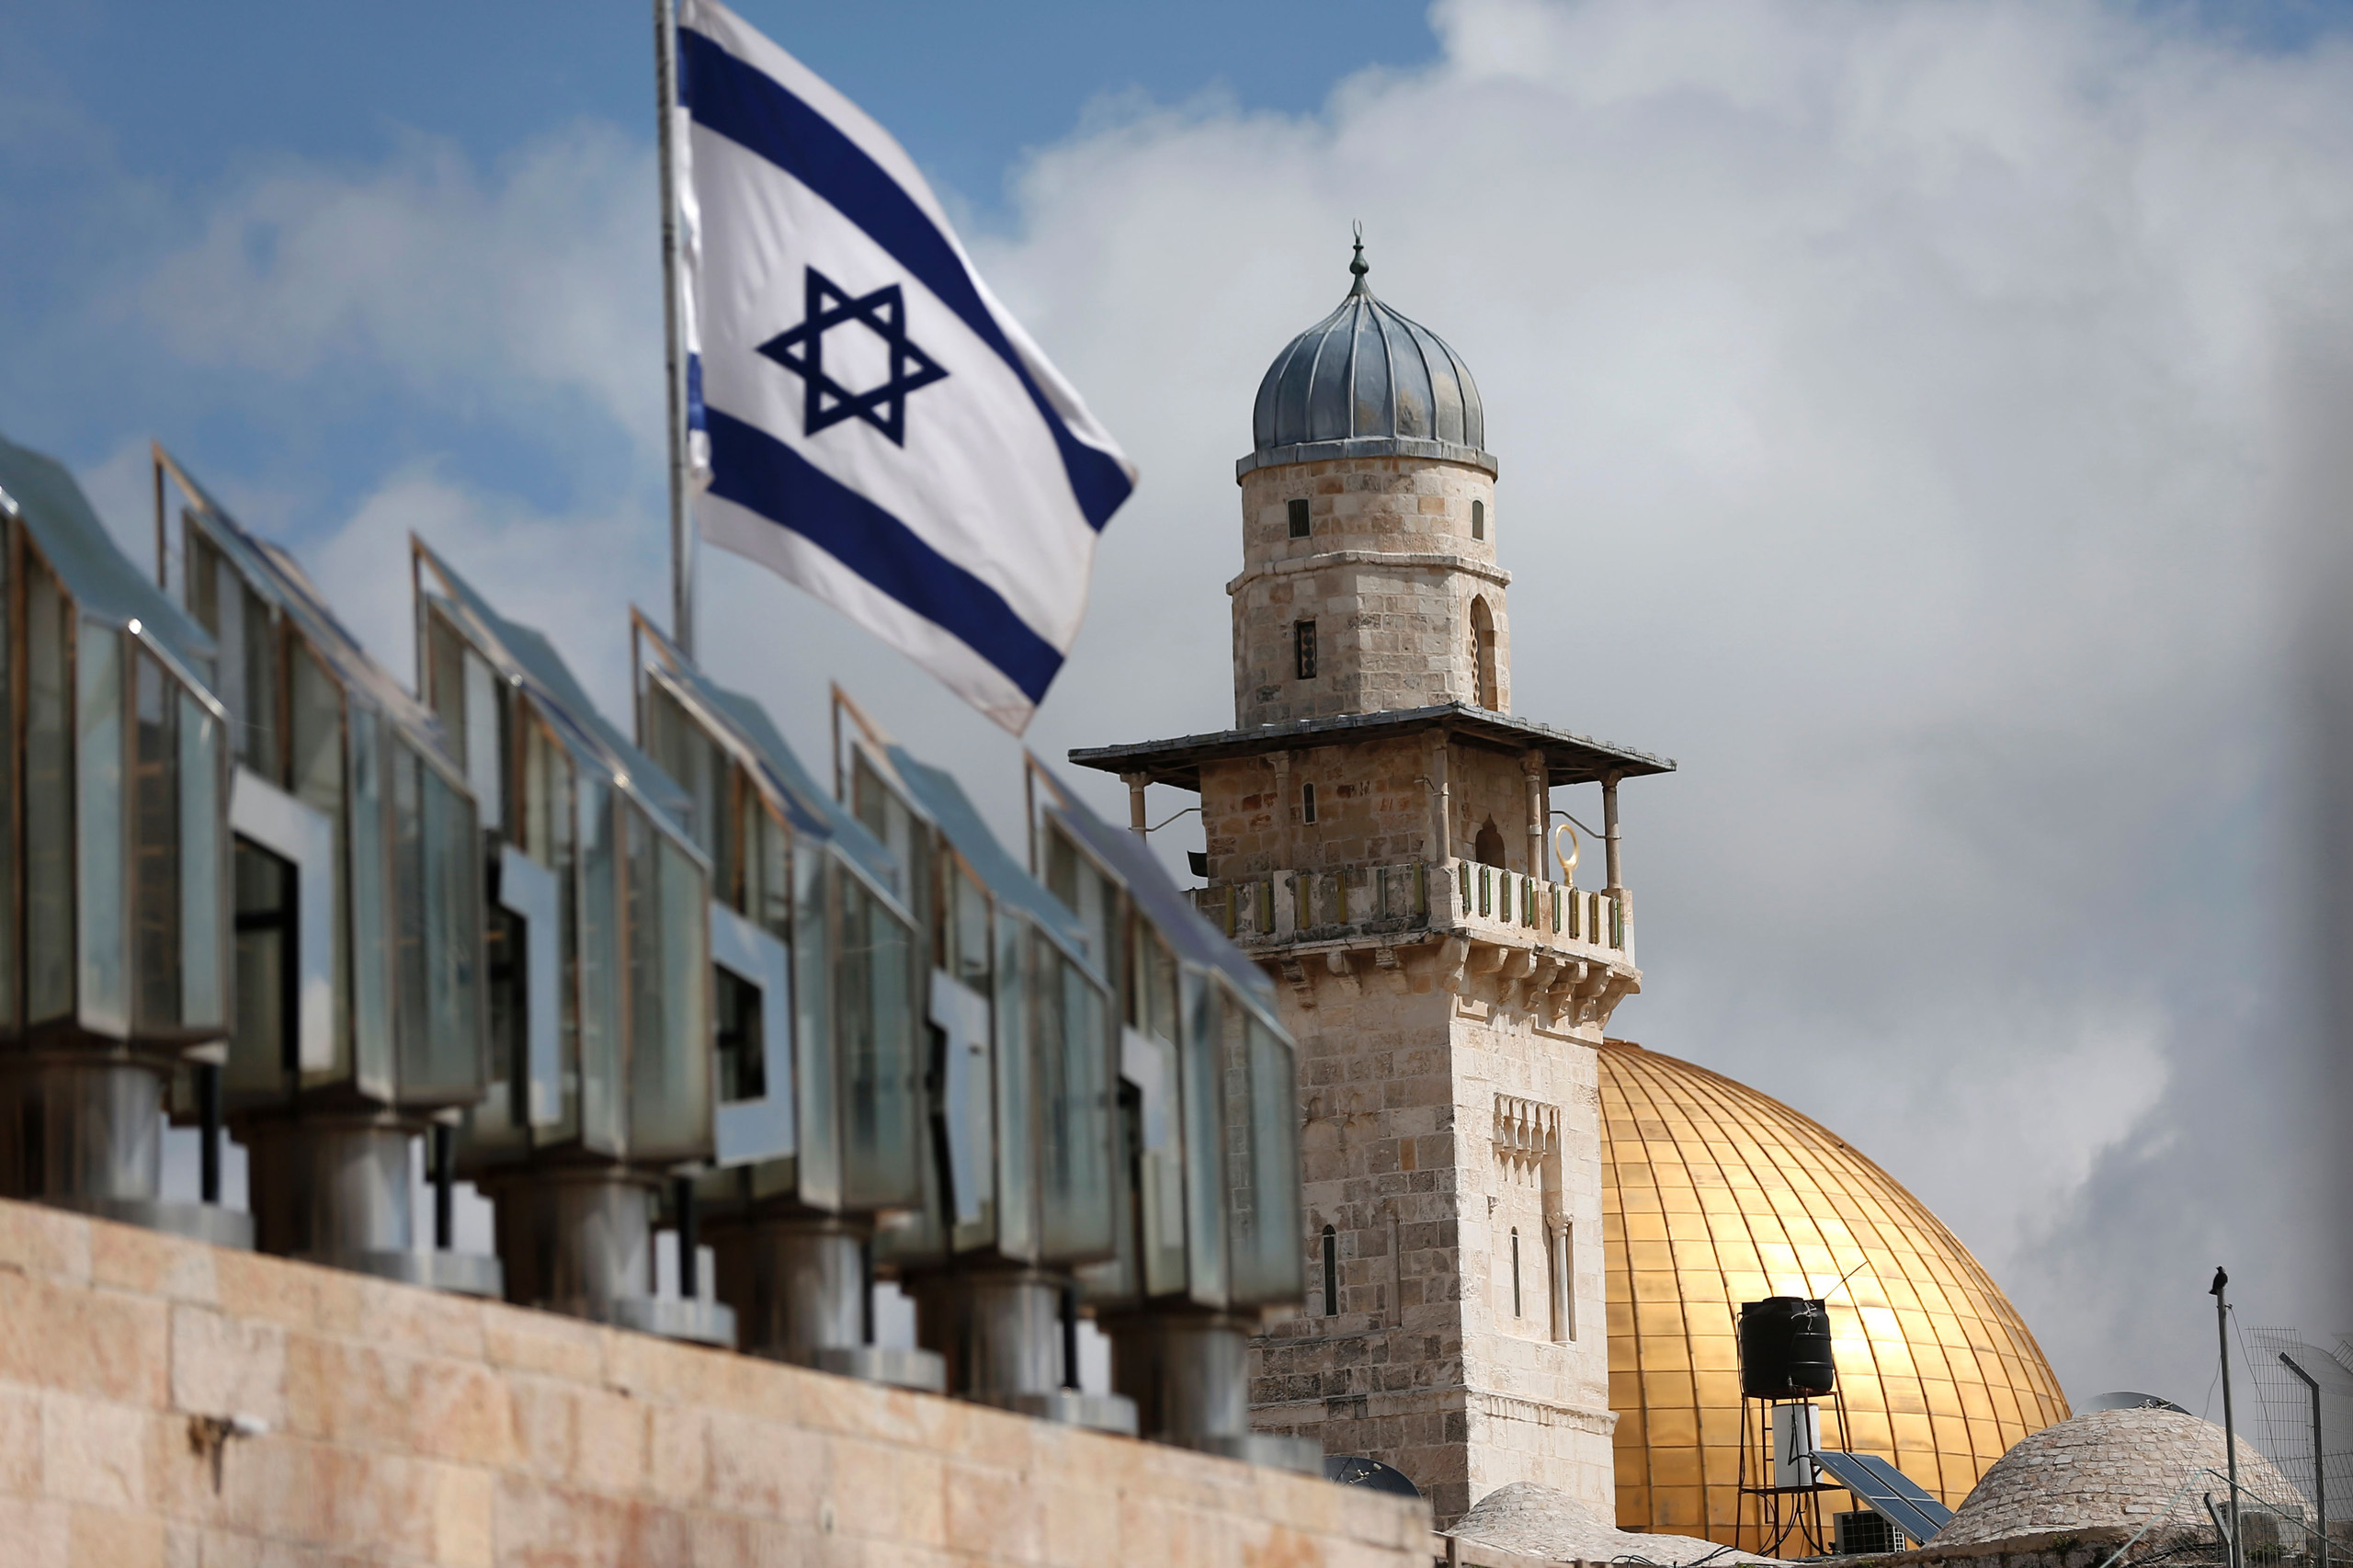 An Israeli flag is seen fleeting in front of a minaret and the Dome of the Rock on the Al-Aqsa mosque compound in Jerusalem's Old City, on March 17, 2016.